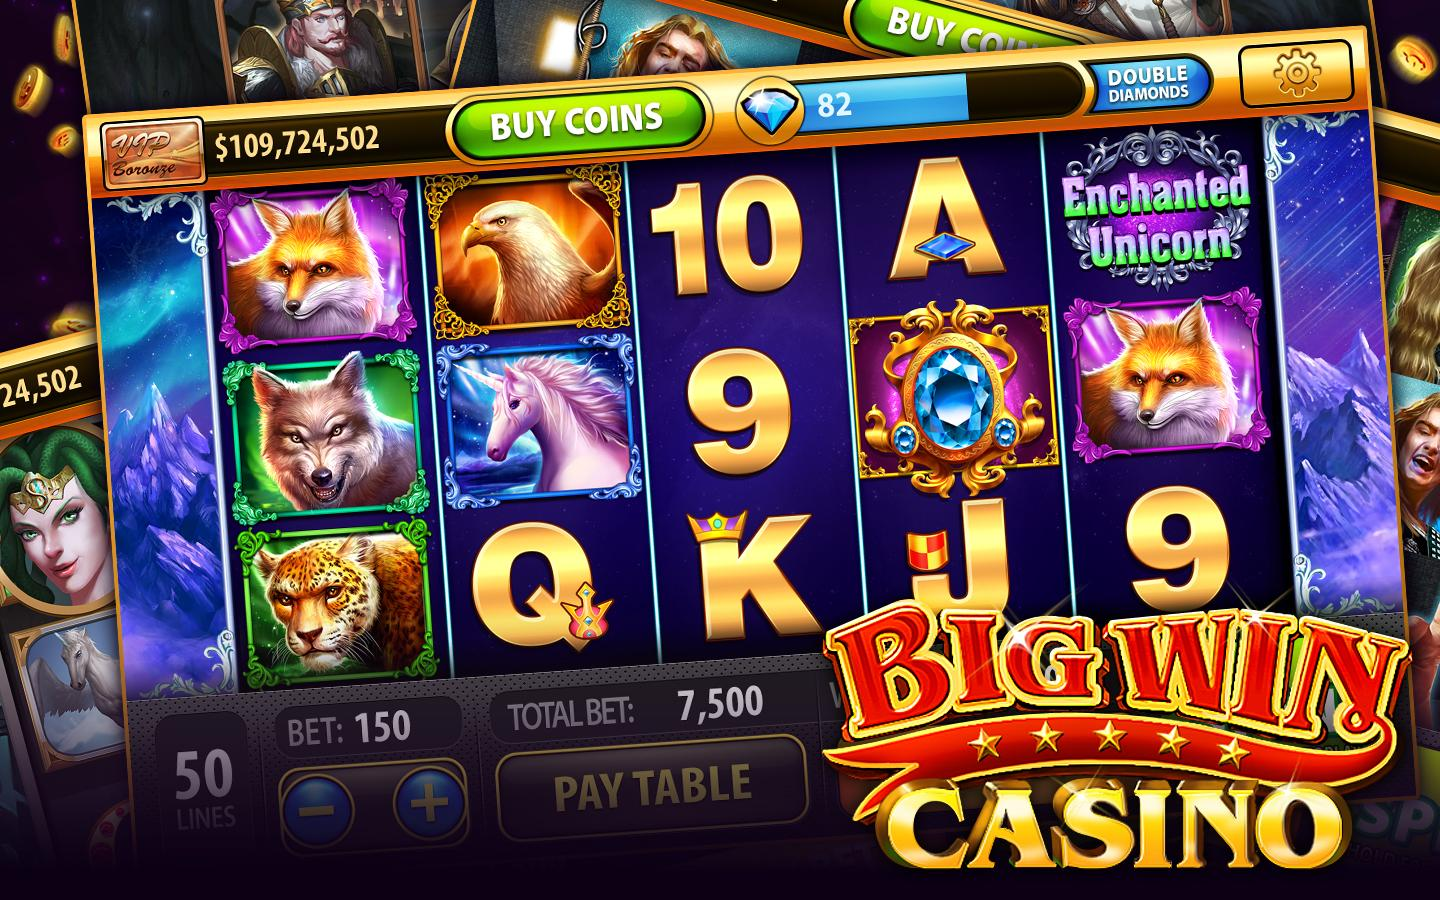 Sparta Slot Machine - Win Big Playing Online Casino Games